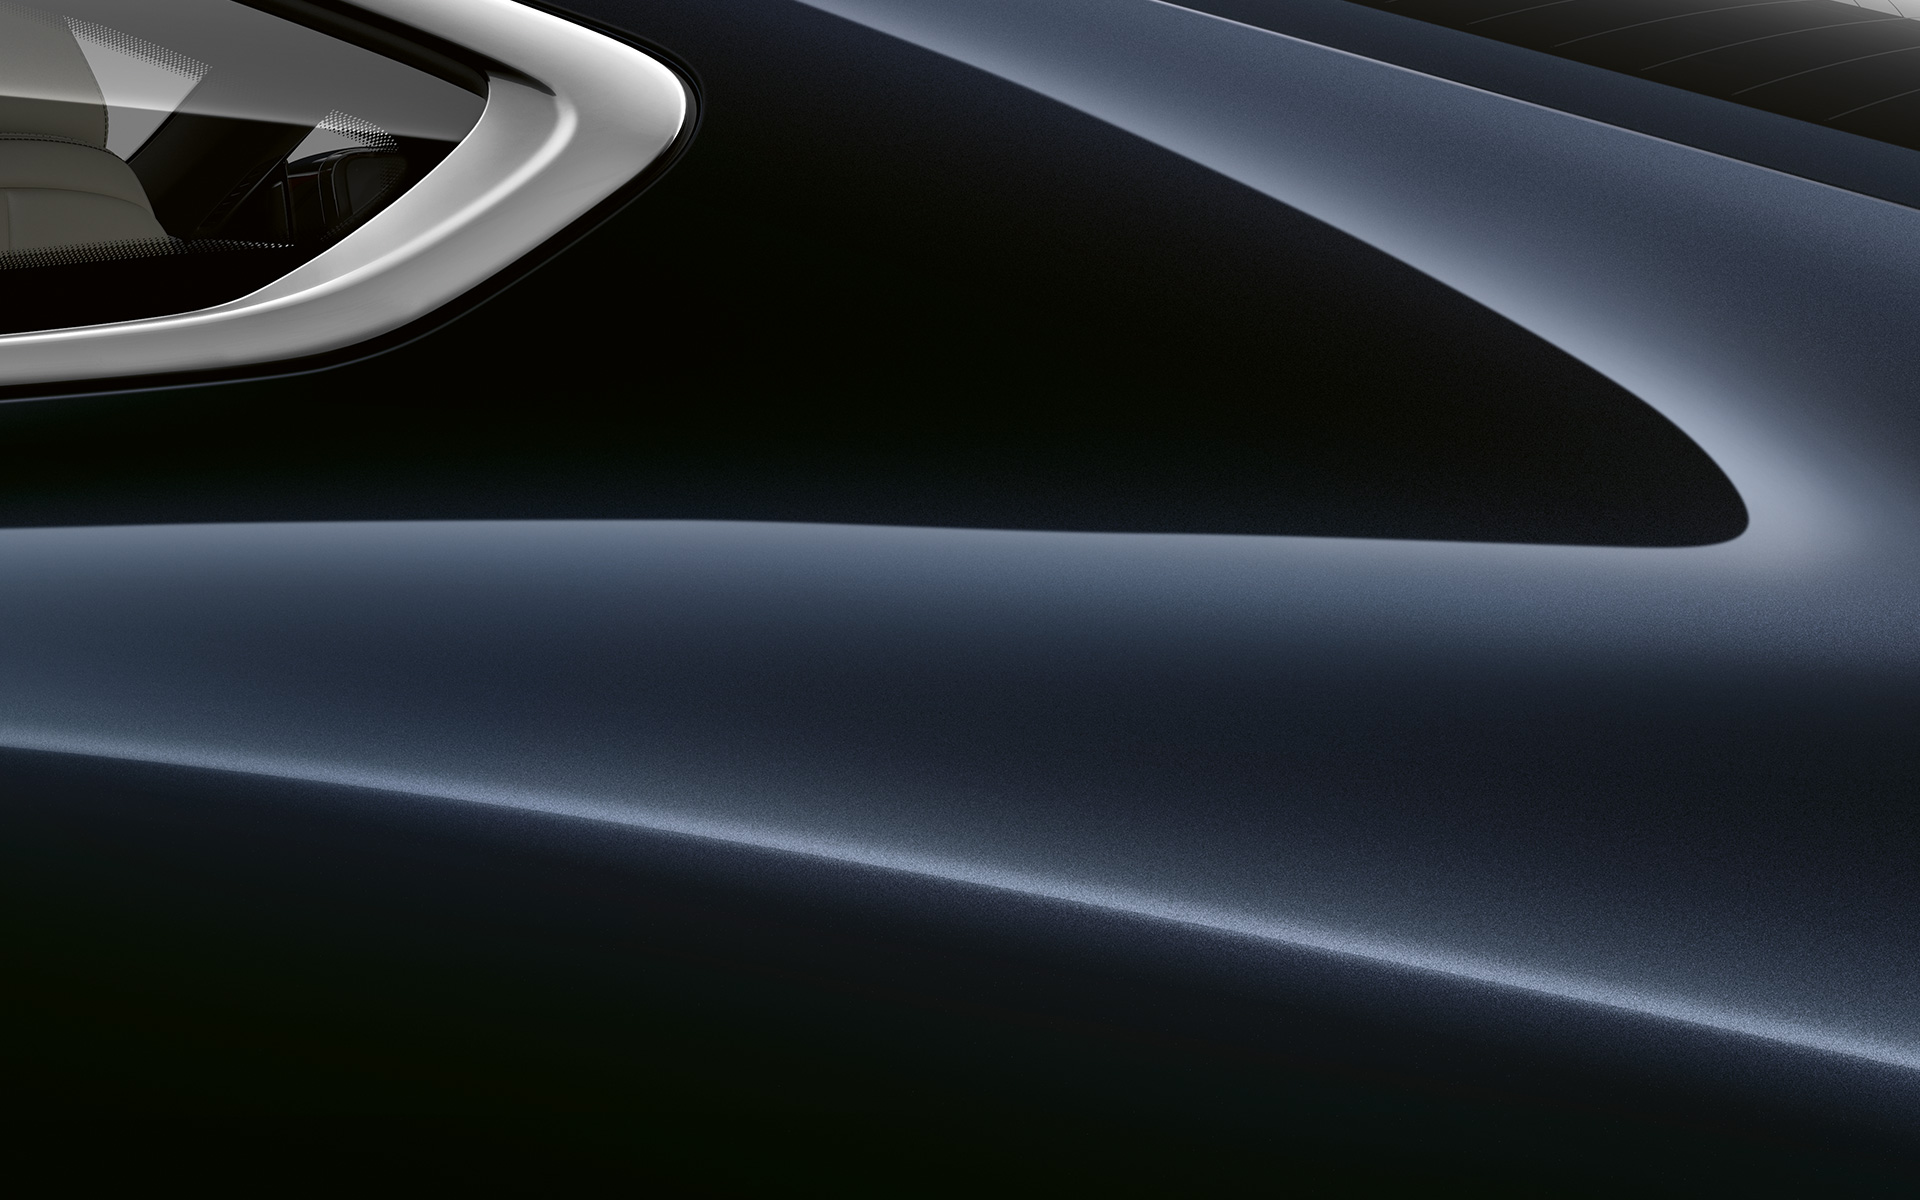 Close-up of the C pillar of the BMW 8 Series Coupé in carbon black metallic.